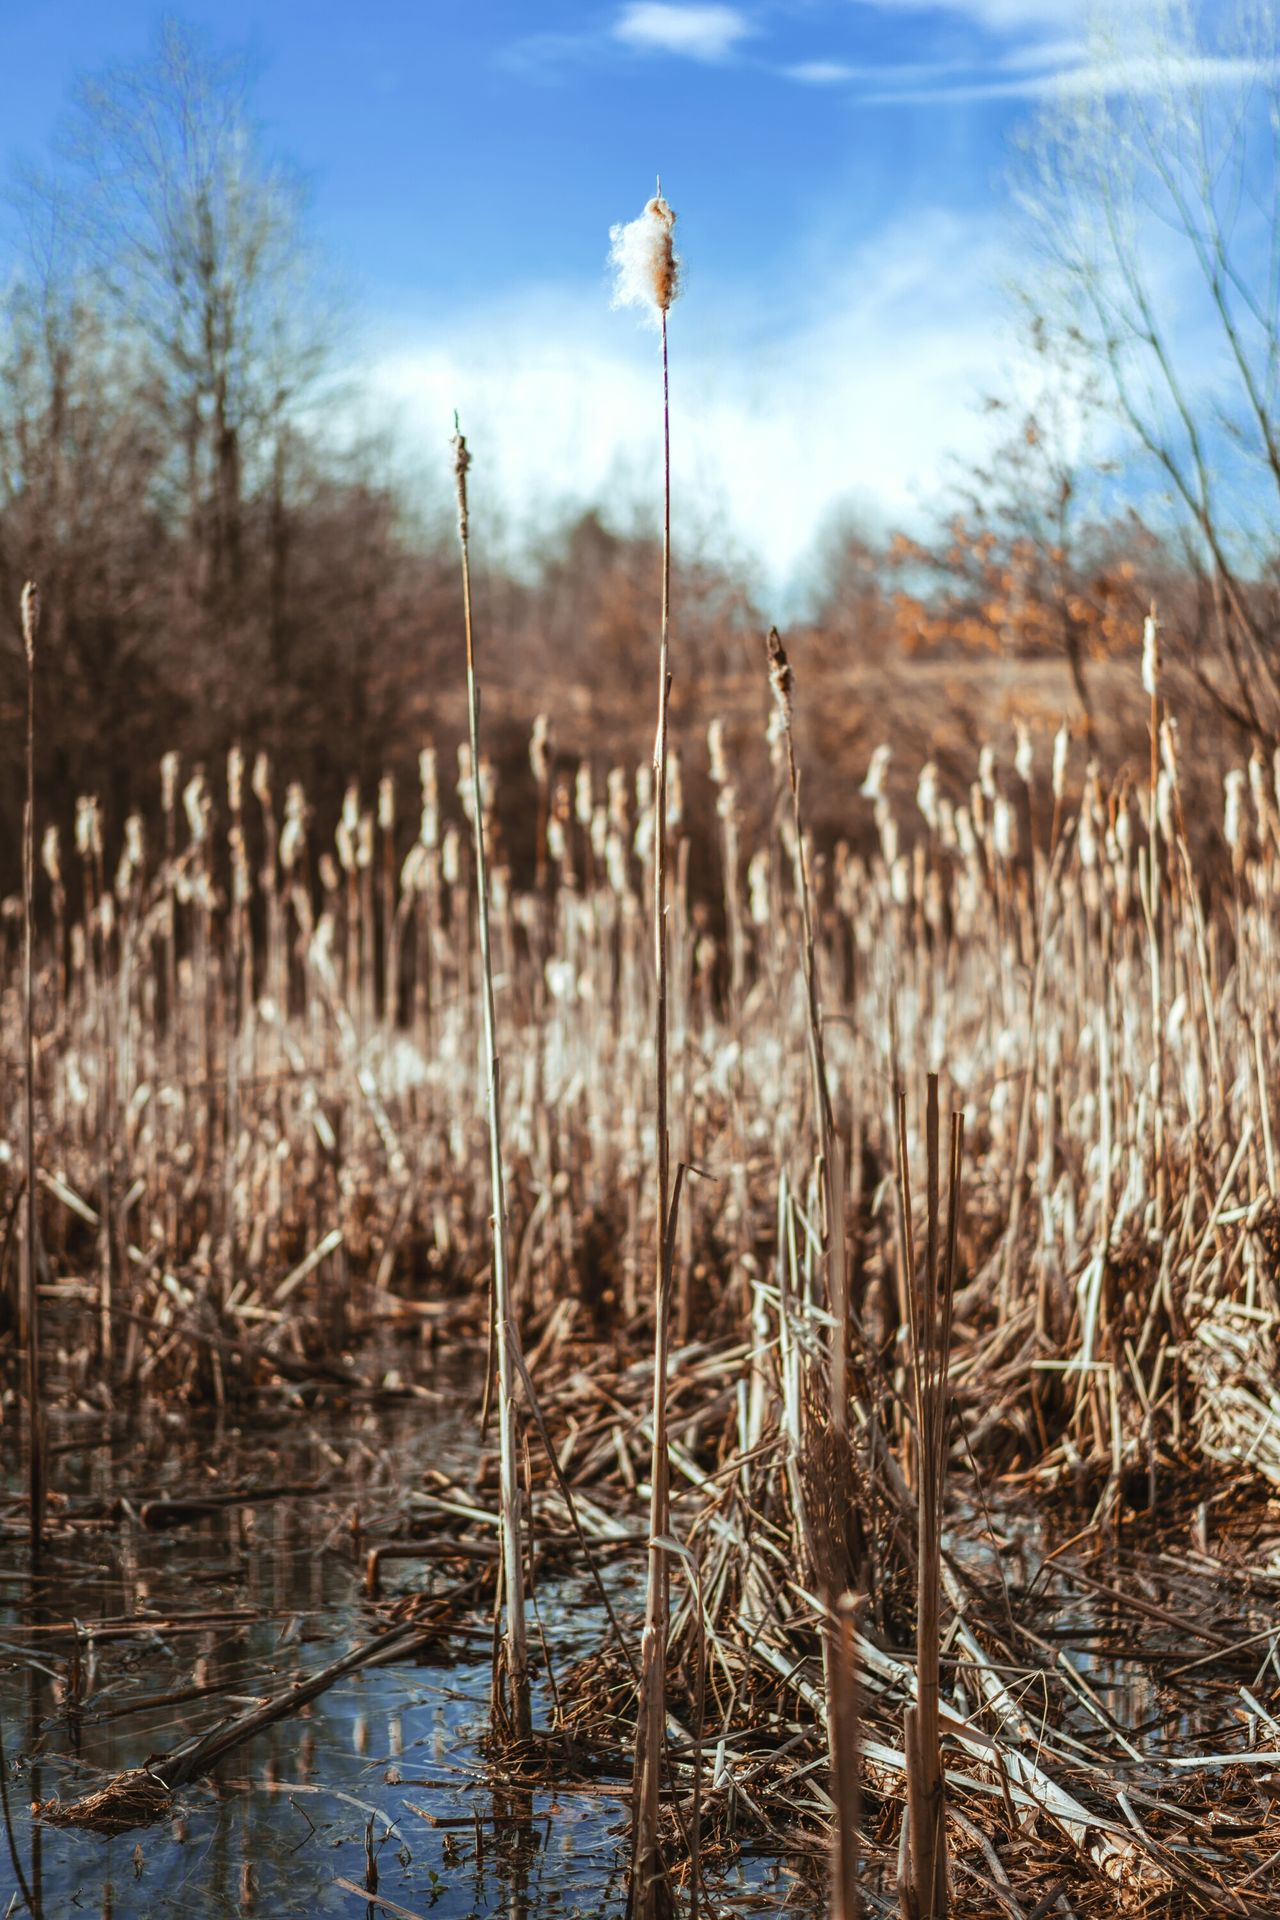 Nature Plant Outdoors Tranquility No People Beauty In Nature Tranquil Scene Sky Water Day Scenics Grass Cold Temperature Dried Plant Close-up Sony Beauty In Nature Nature Spring Zeiss 55 F/1.8 Day Freshness Growth Morning Tranquility The Week Of Eyeem EyeEmNewHere